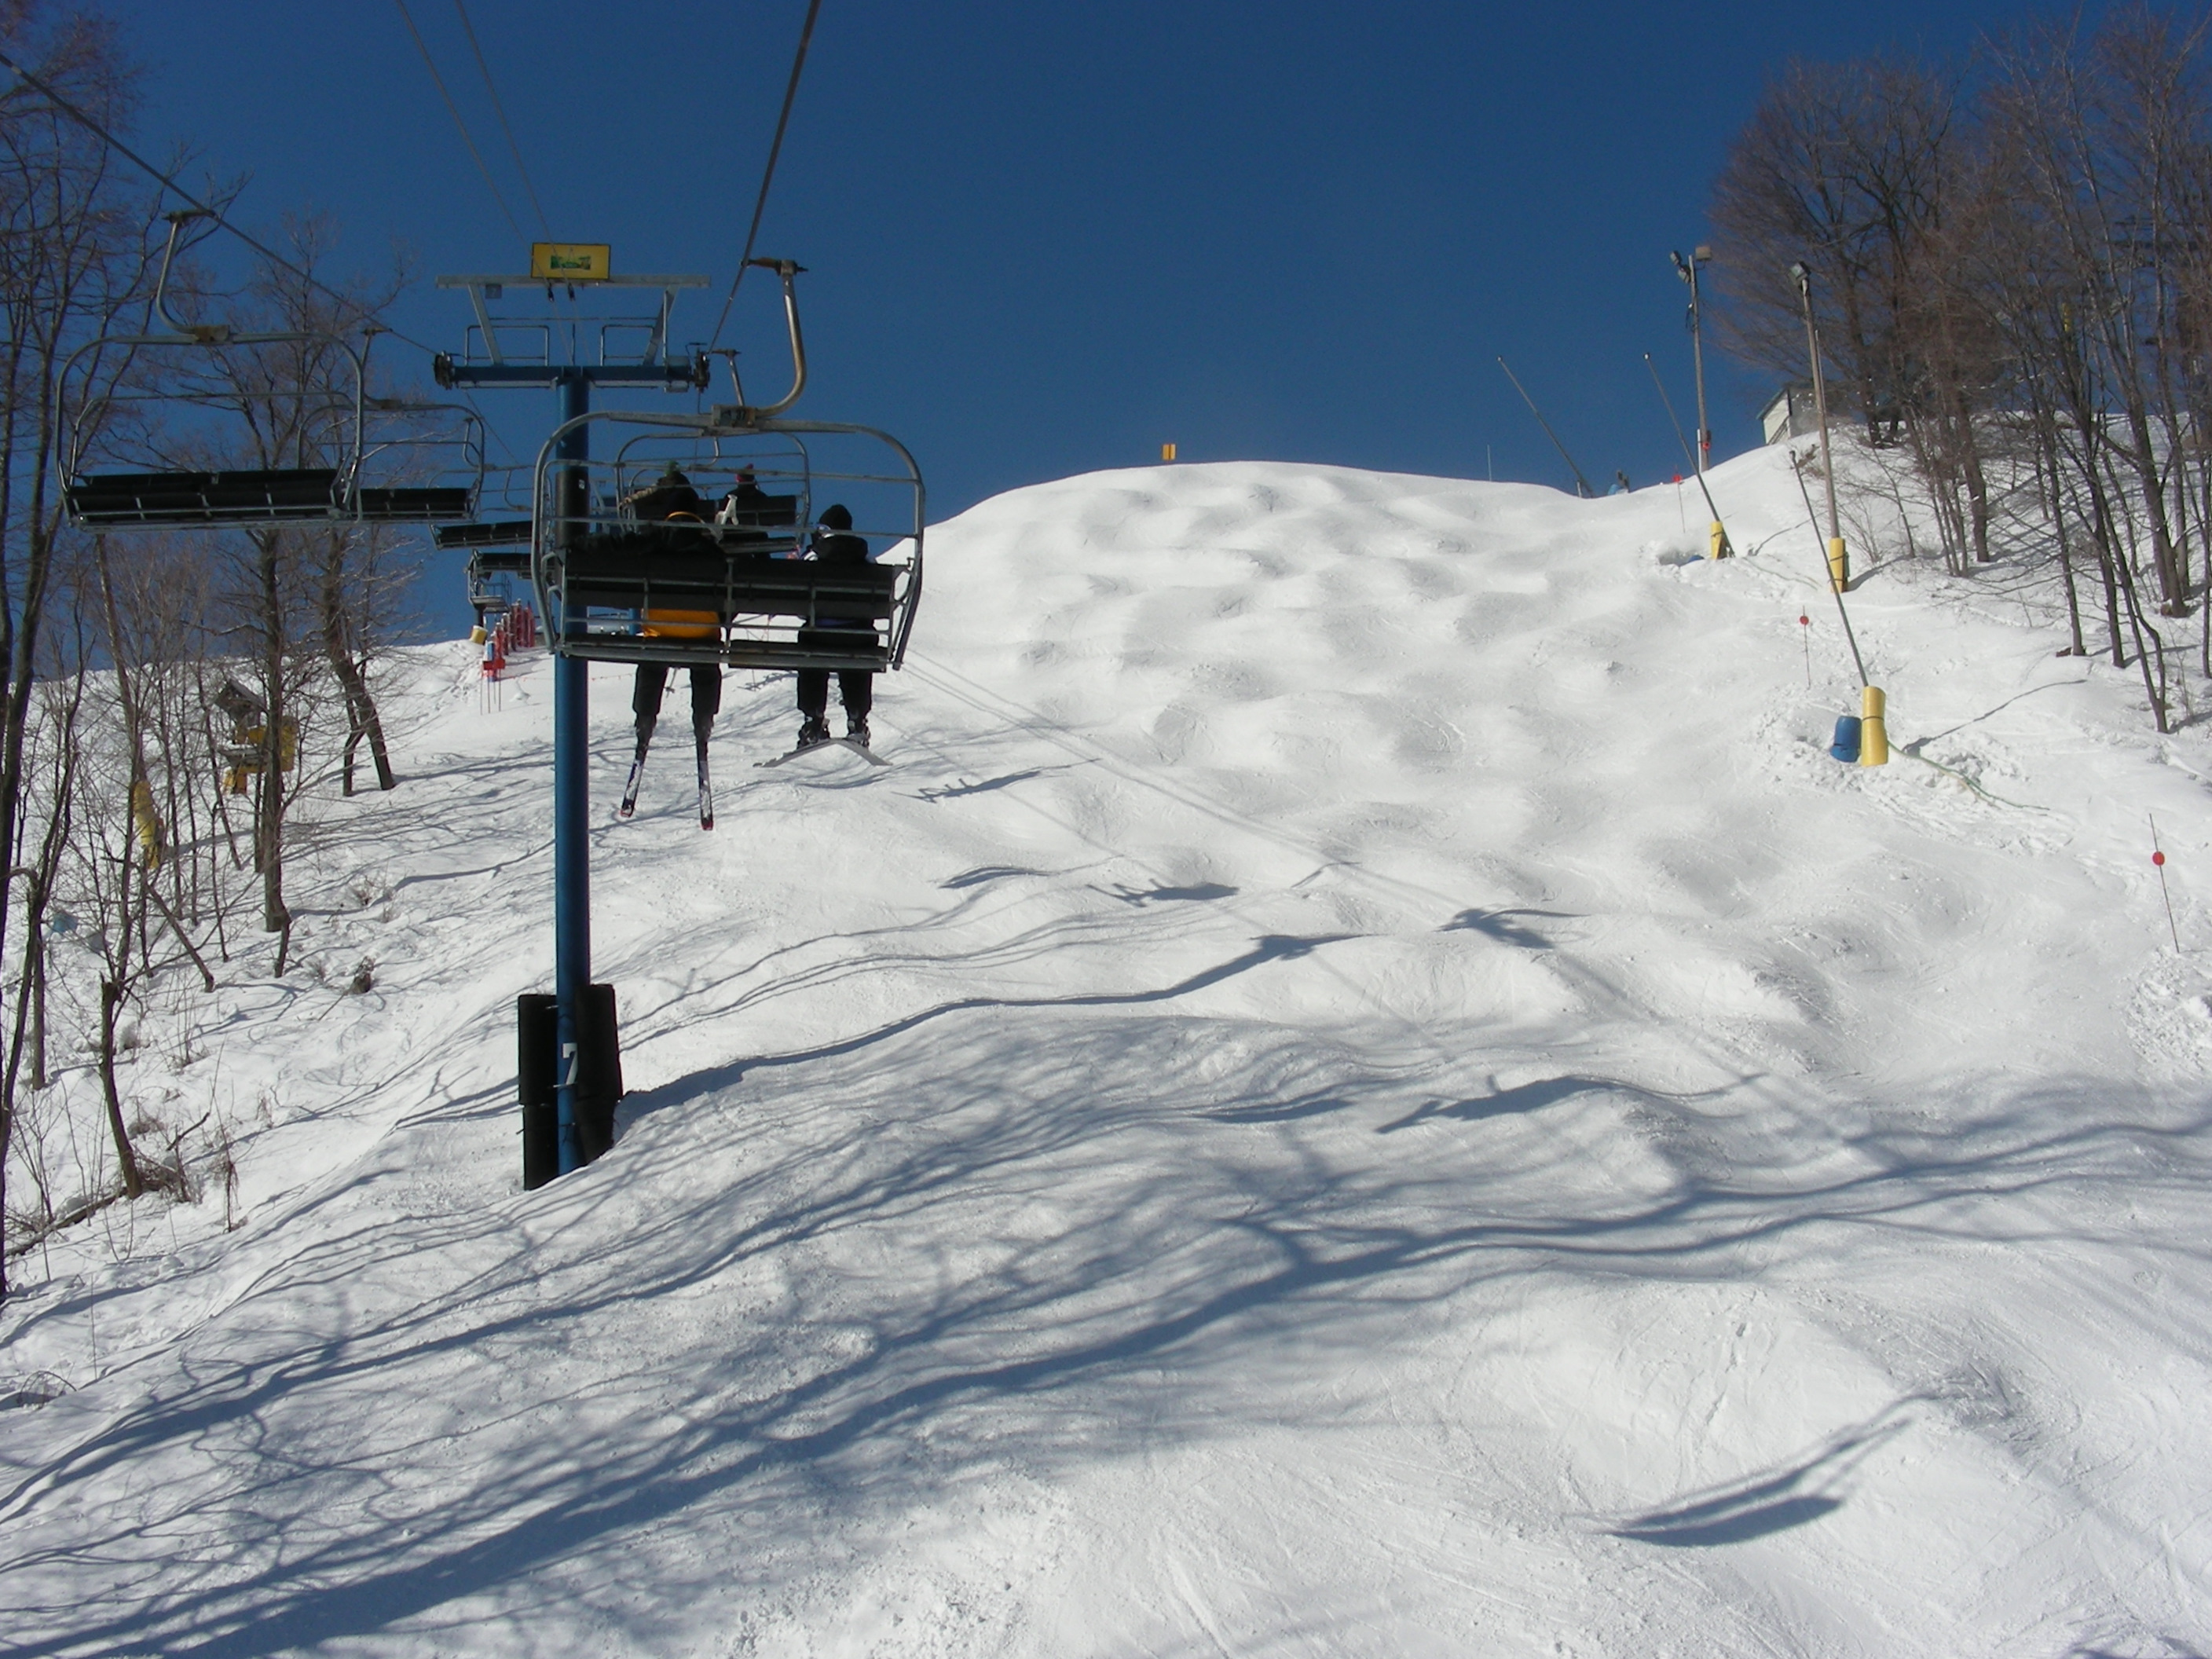 file:liberty mountain resort upper eastwind - wikimedia commons